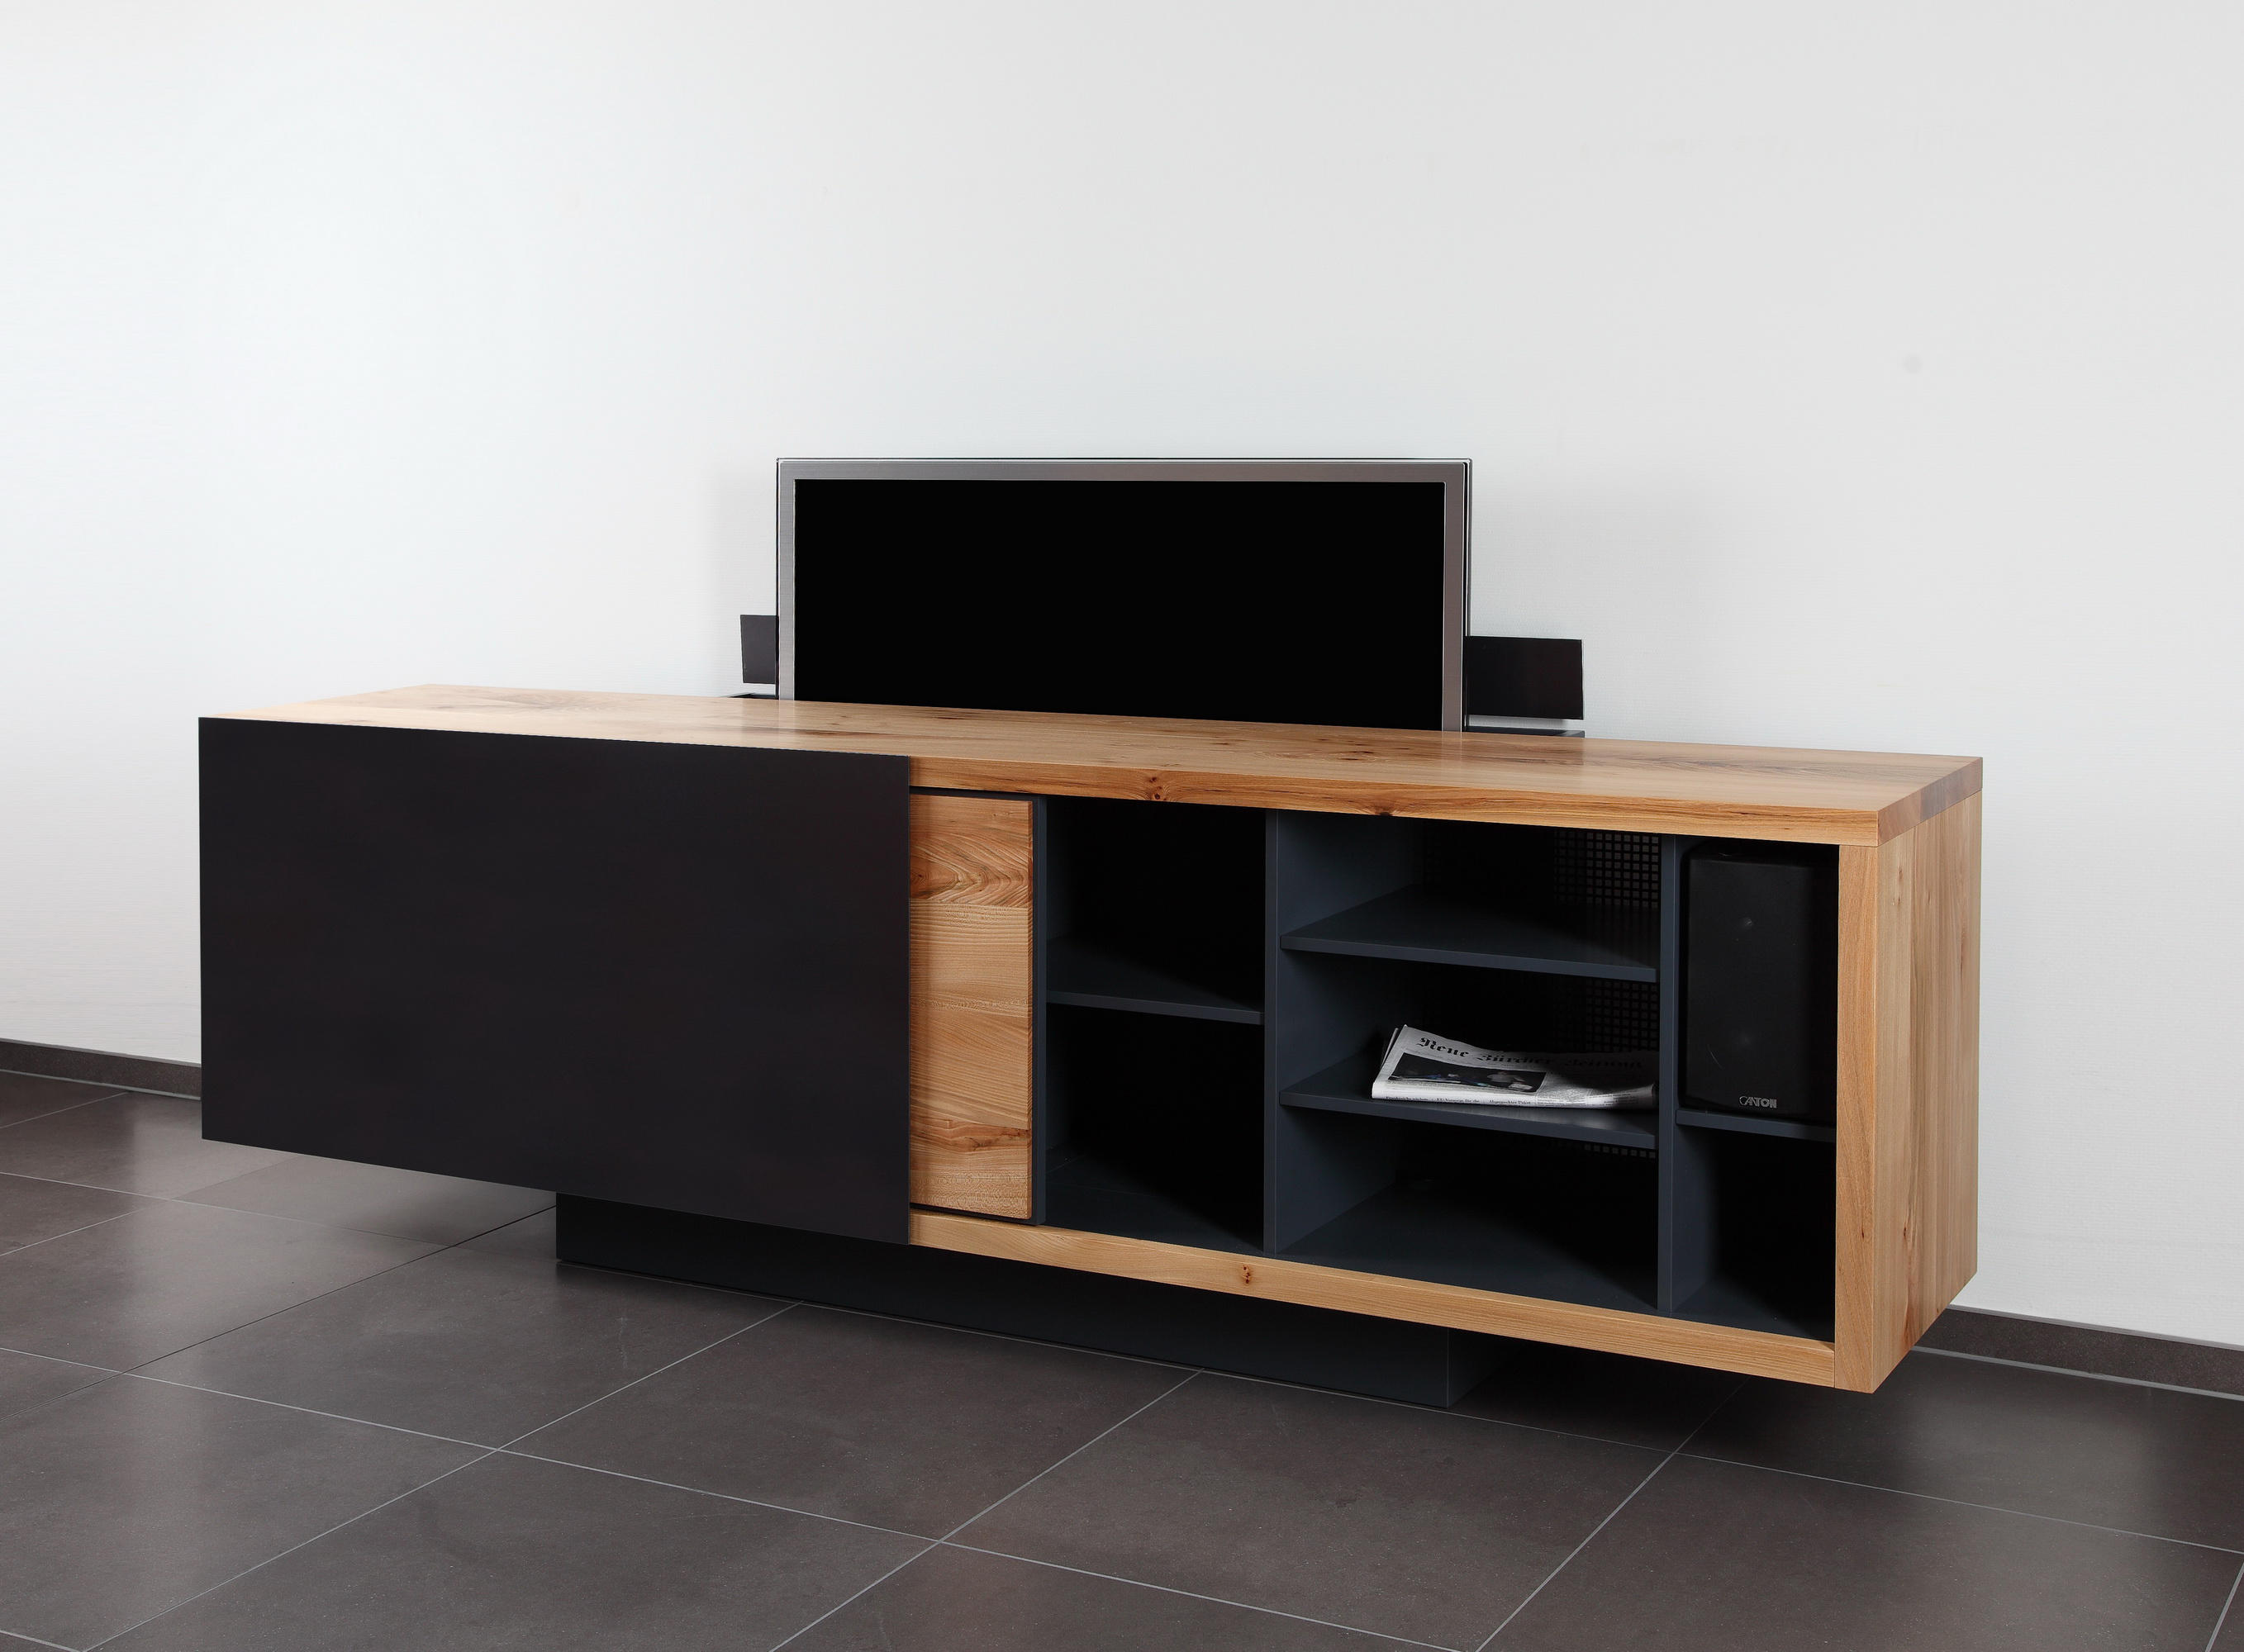 Fernsehmöbel Versenkbar Ign B2 Tv Sideboard Multimedia Sideboards Von Ign